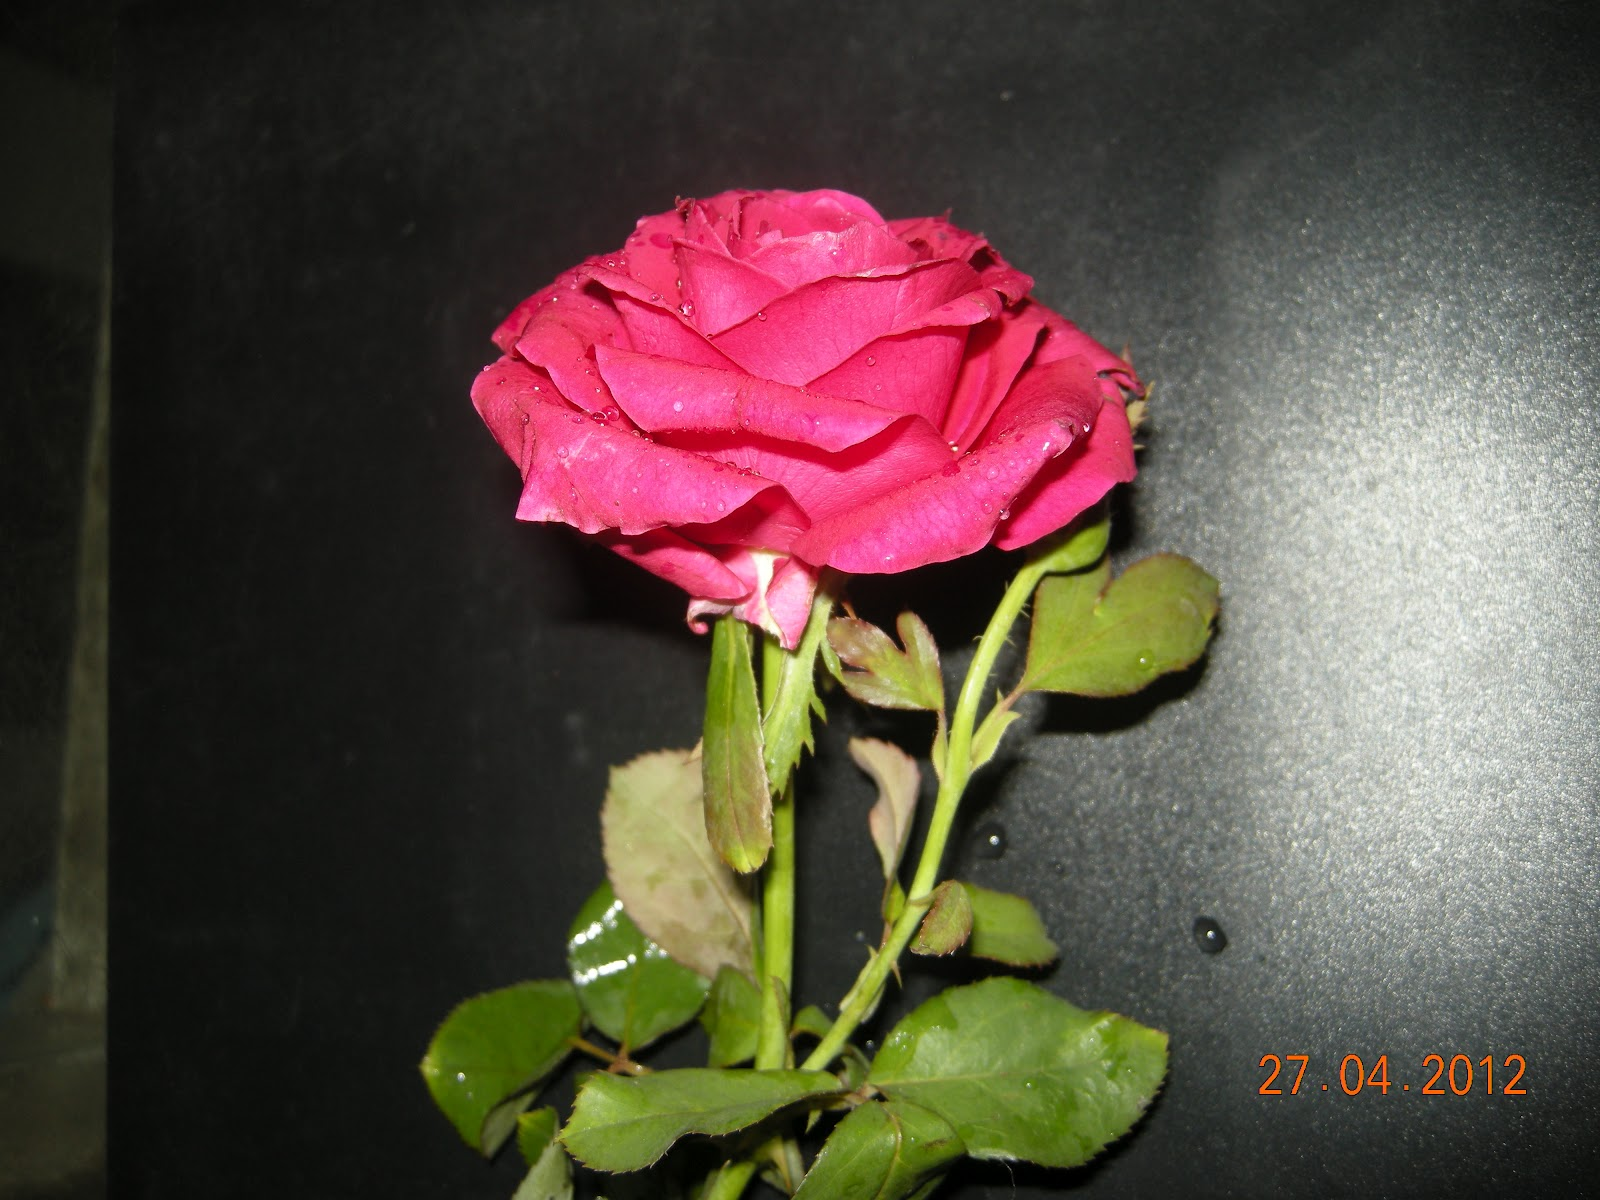 Rosethe queen of flowers rose the most beautiful flower rose the most beautiful flower izmirmasajfo